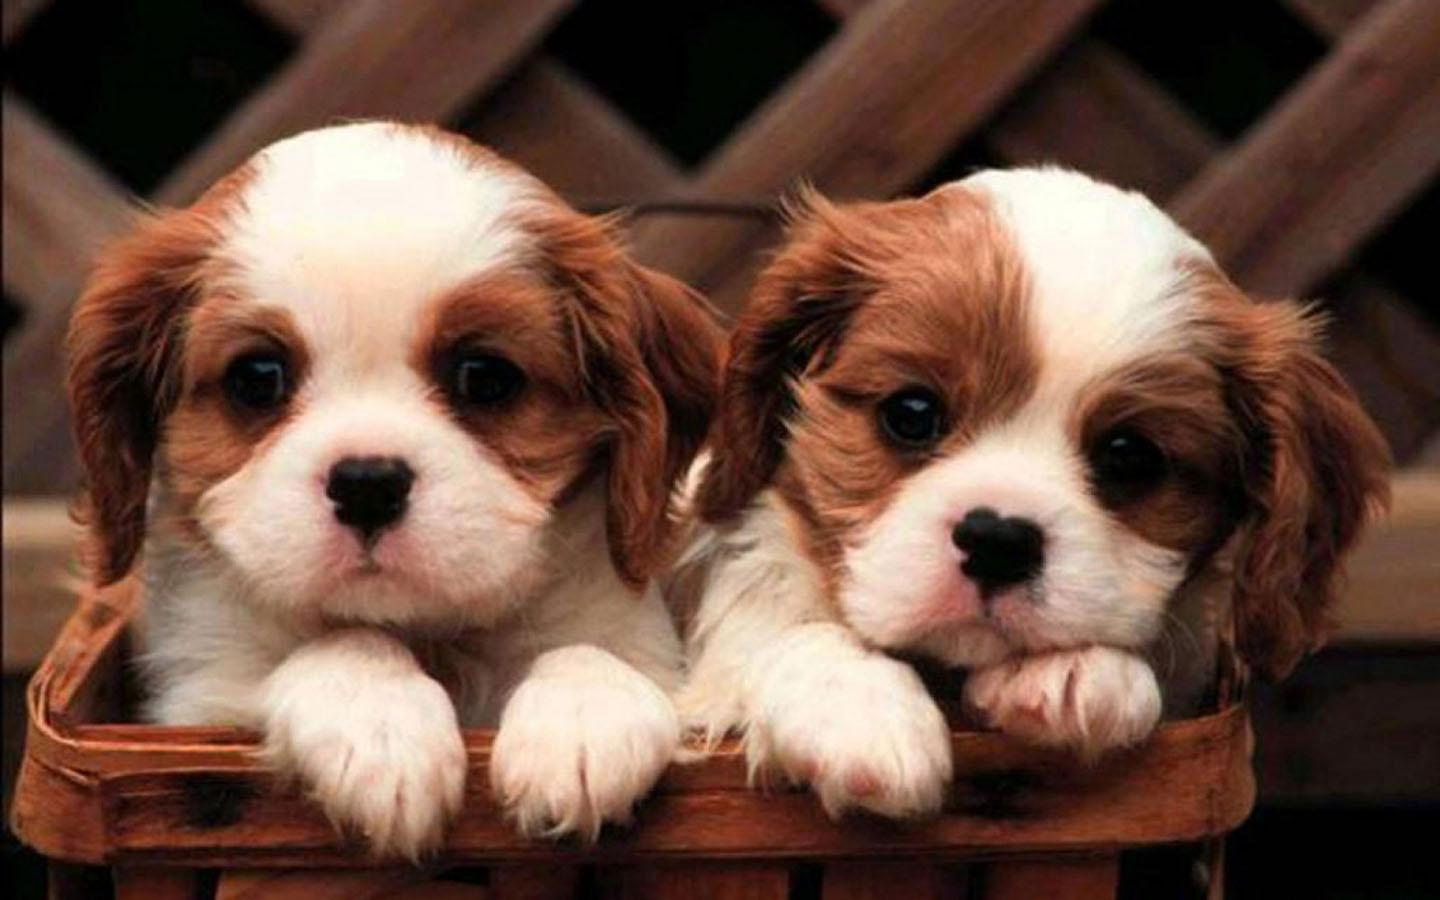 Cute Little Puppy Wallpaper for Android   APK Download 1440x900